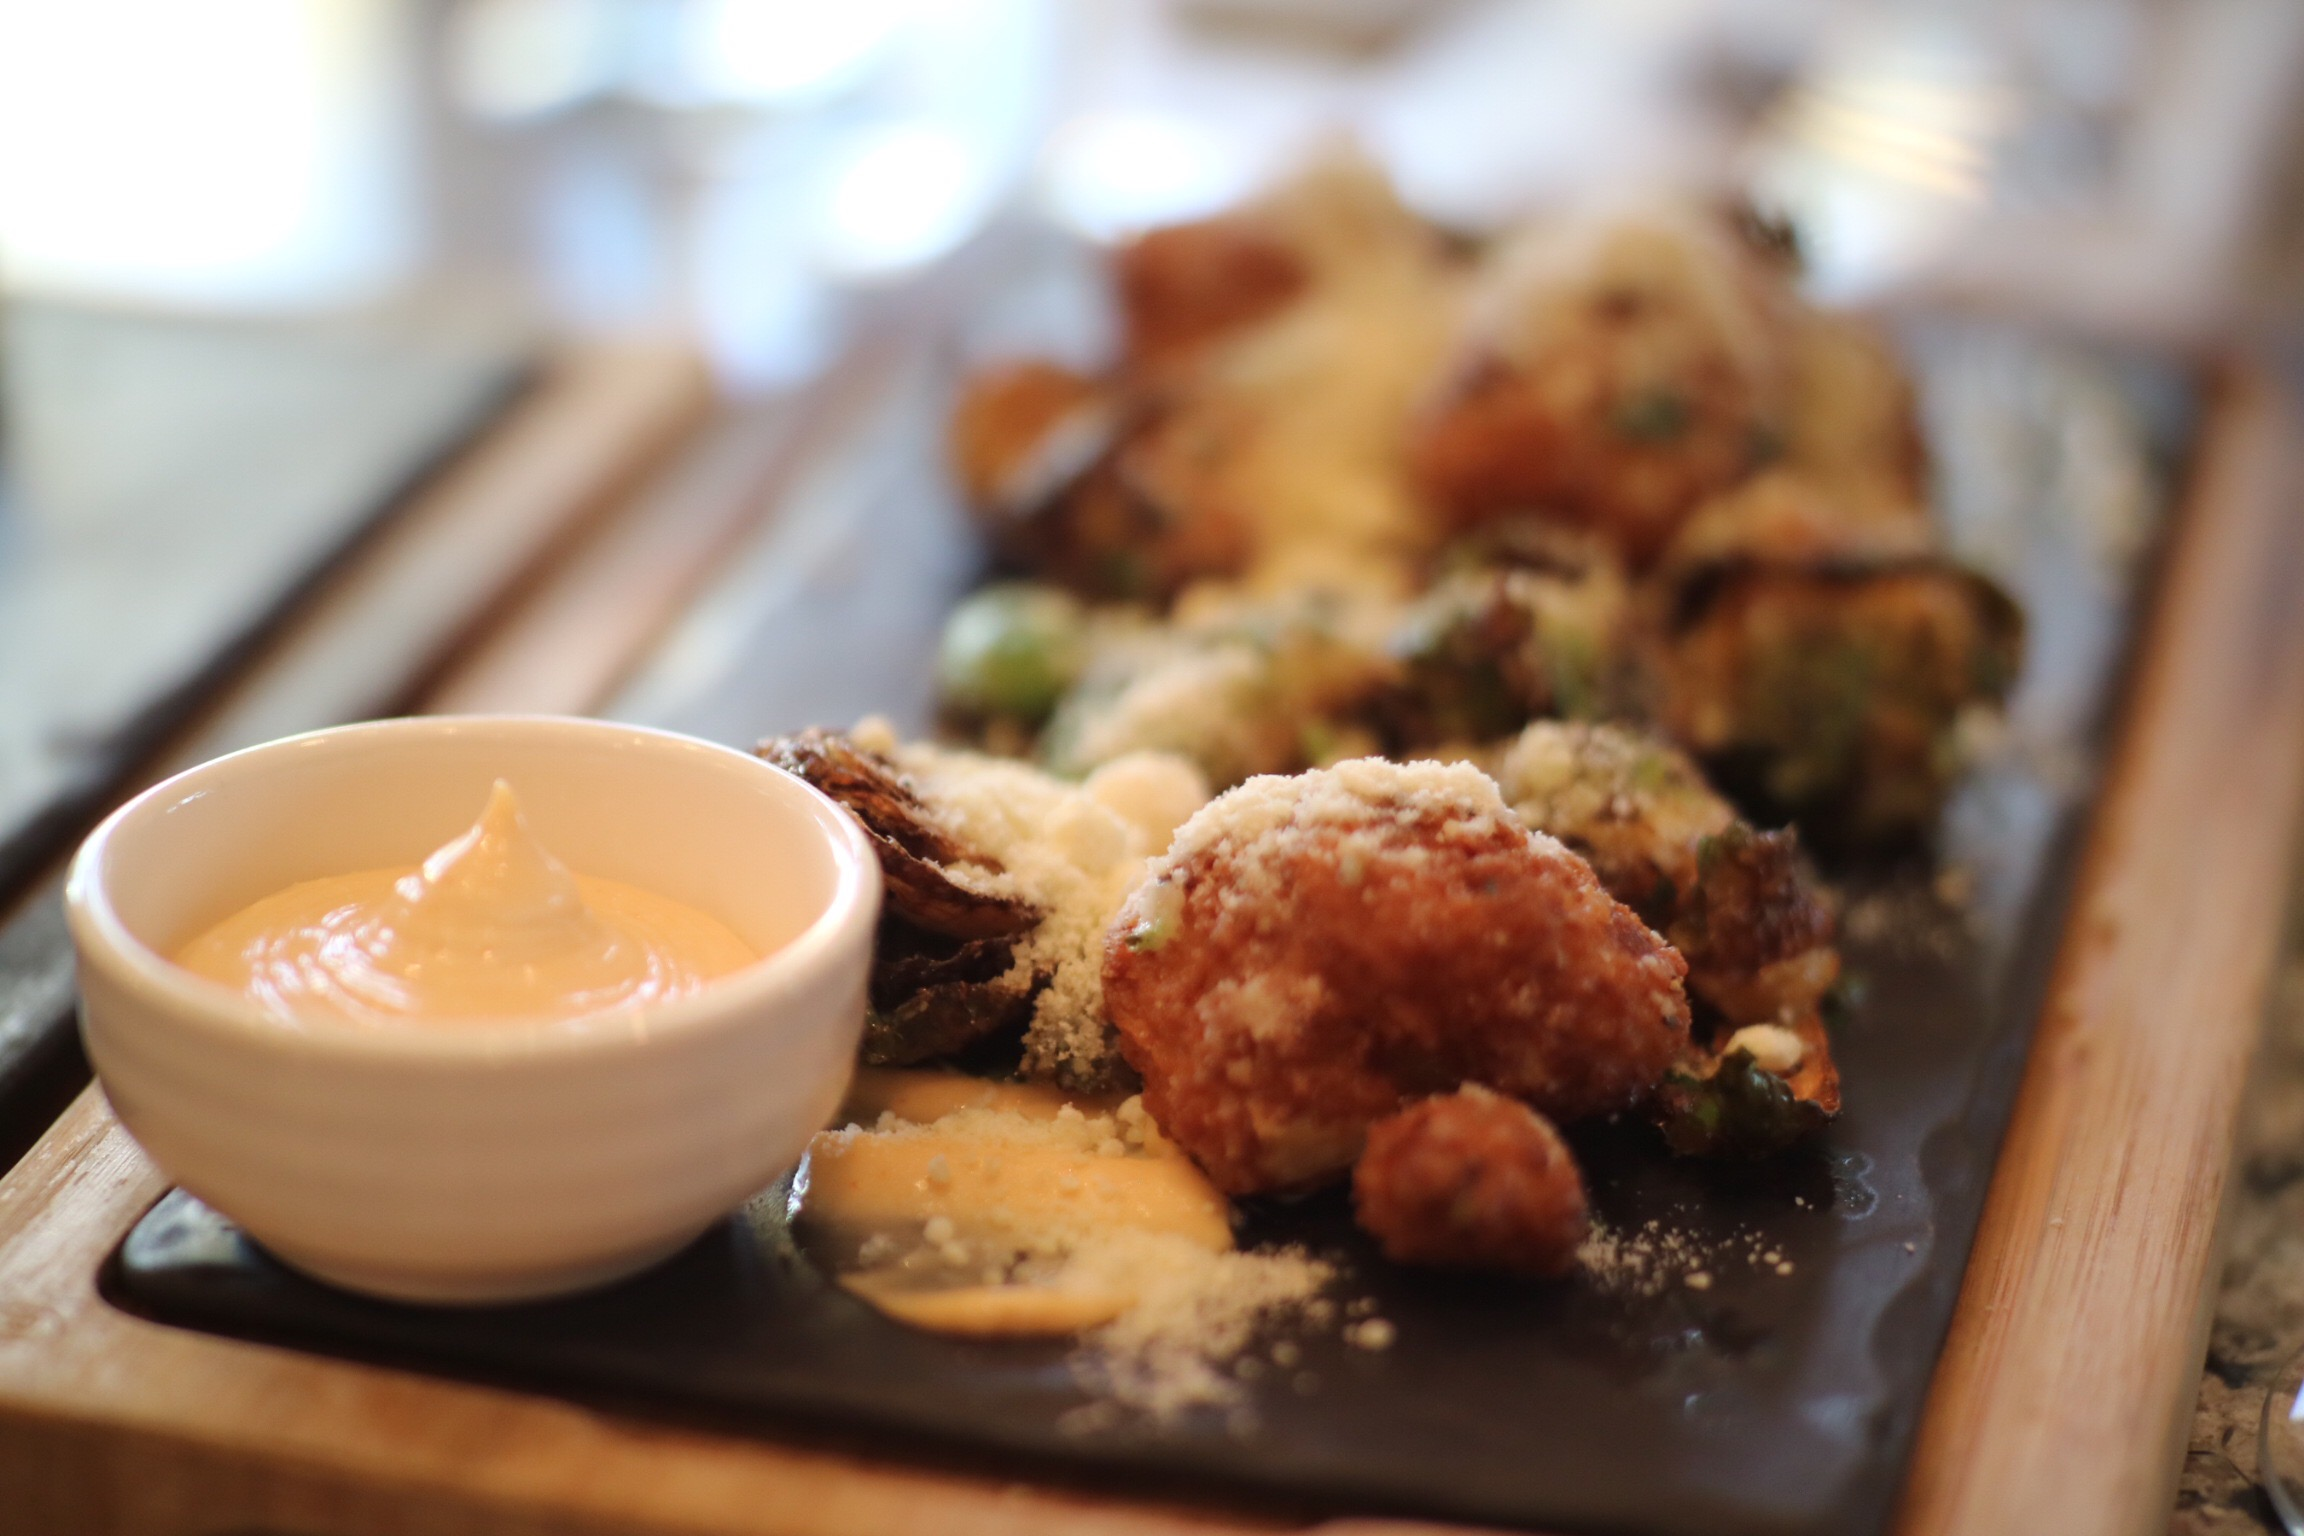 Fried Cauliflower & Brussel Sprouts